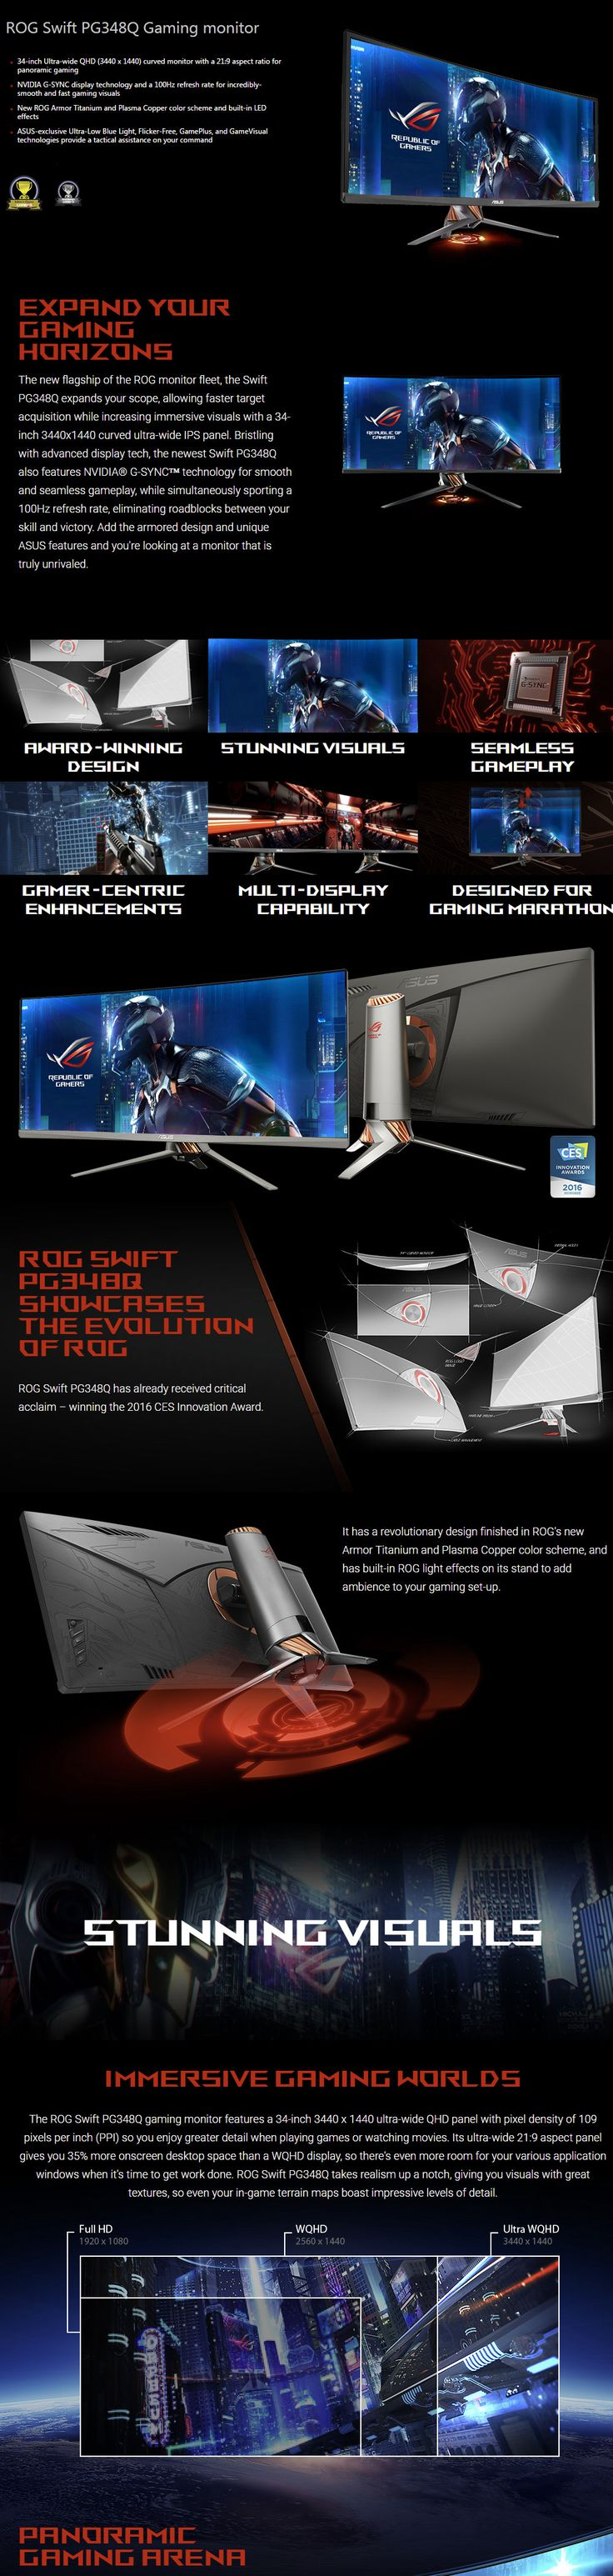 """ASUS ROG PG348Q 34"""" Curved G-Sync 100Hz 1440P IPS Gaming Monitor - Computer Lounge"""